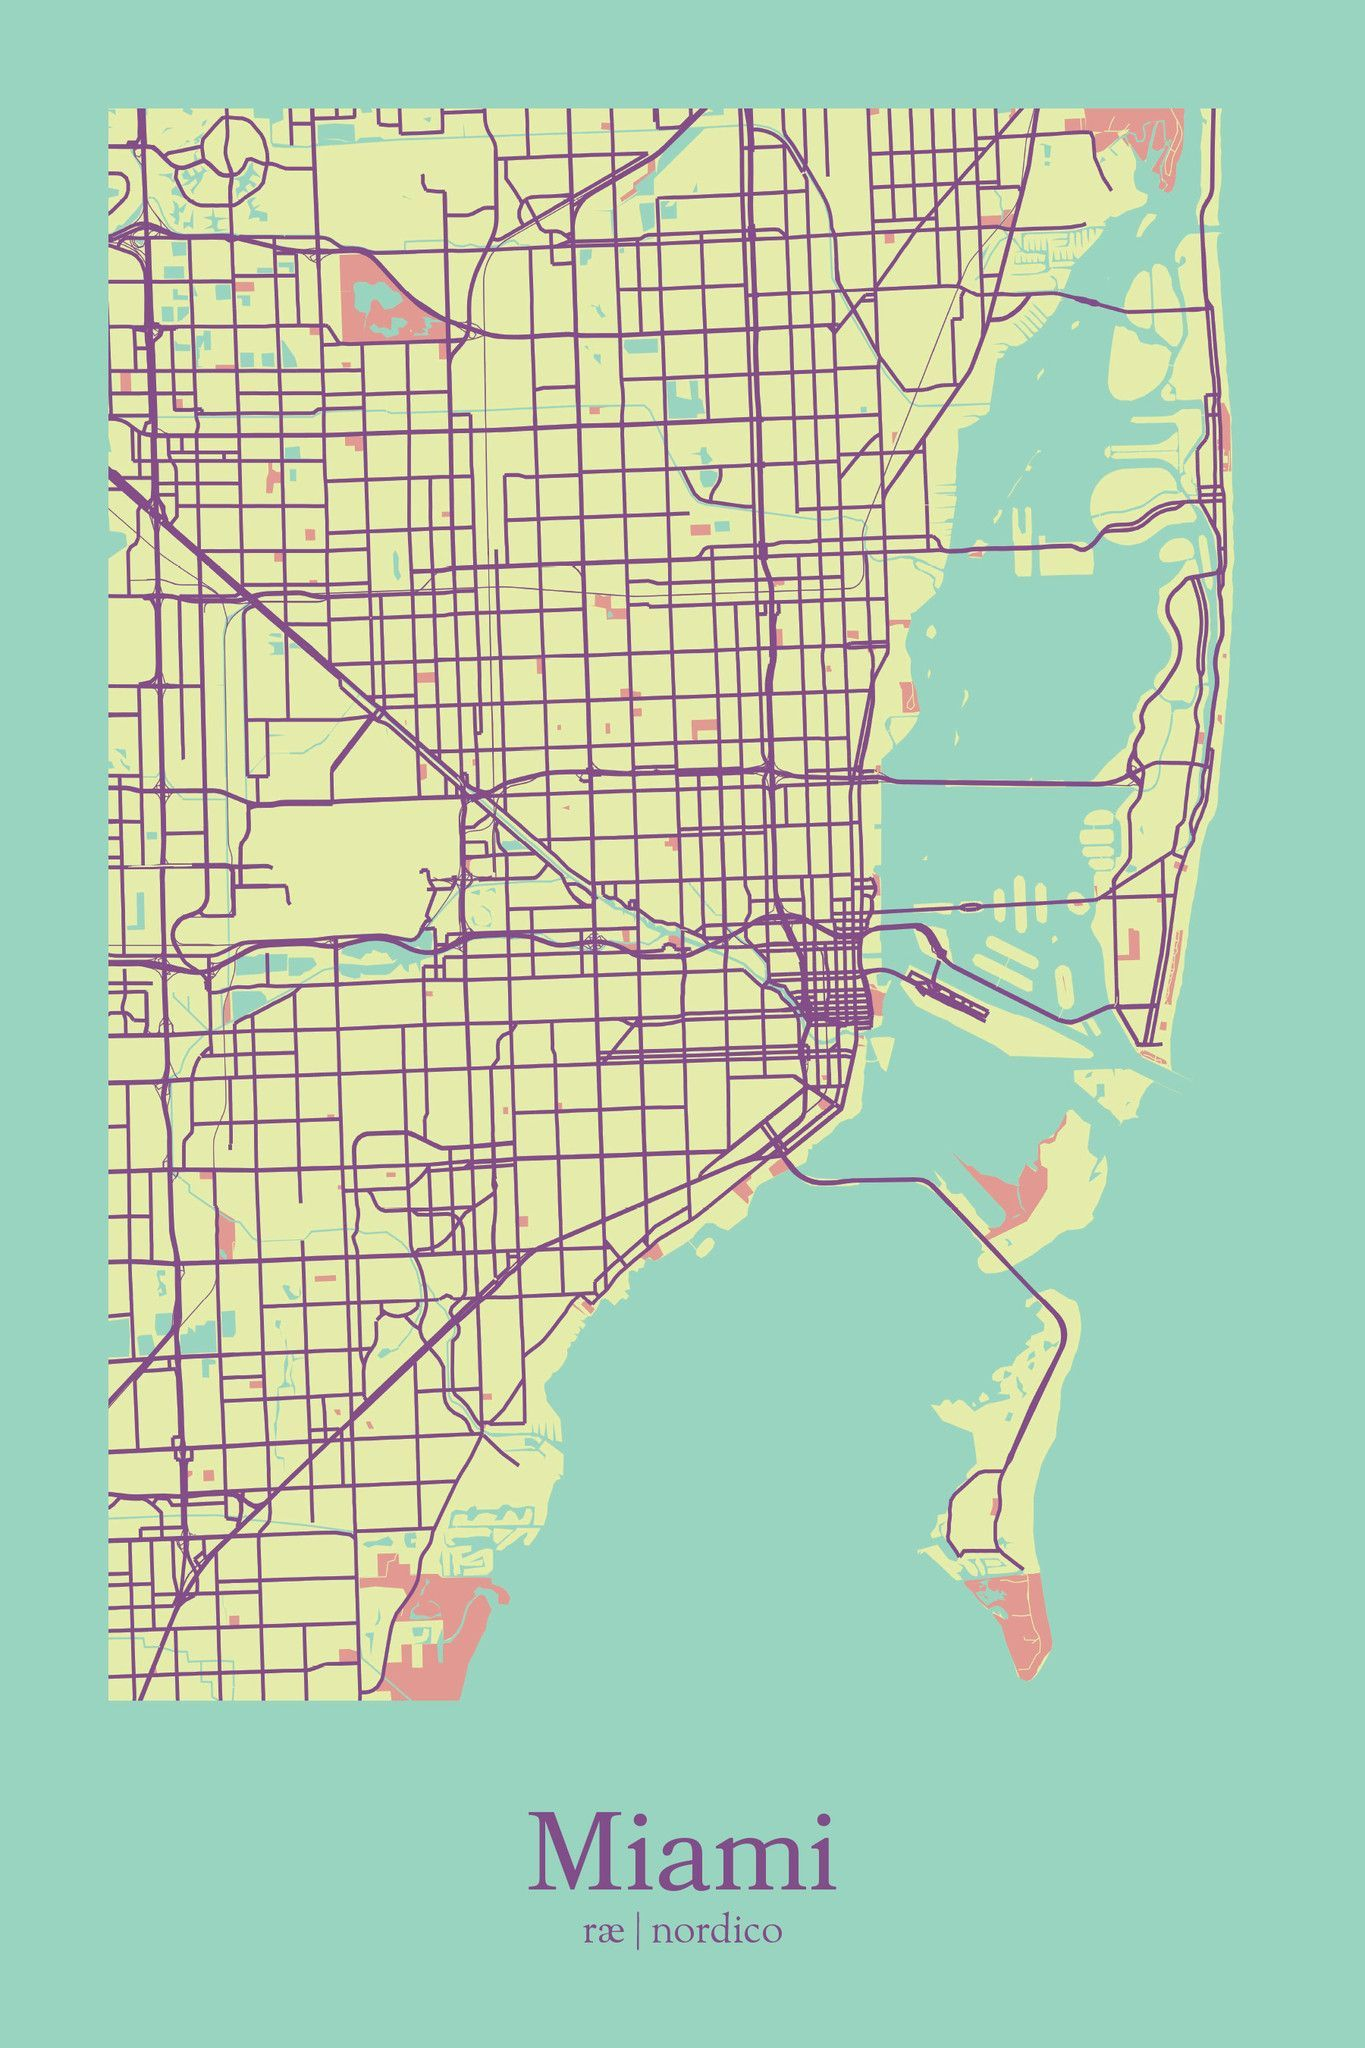 miami, usa map printrae nordico #map #miami #florida